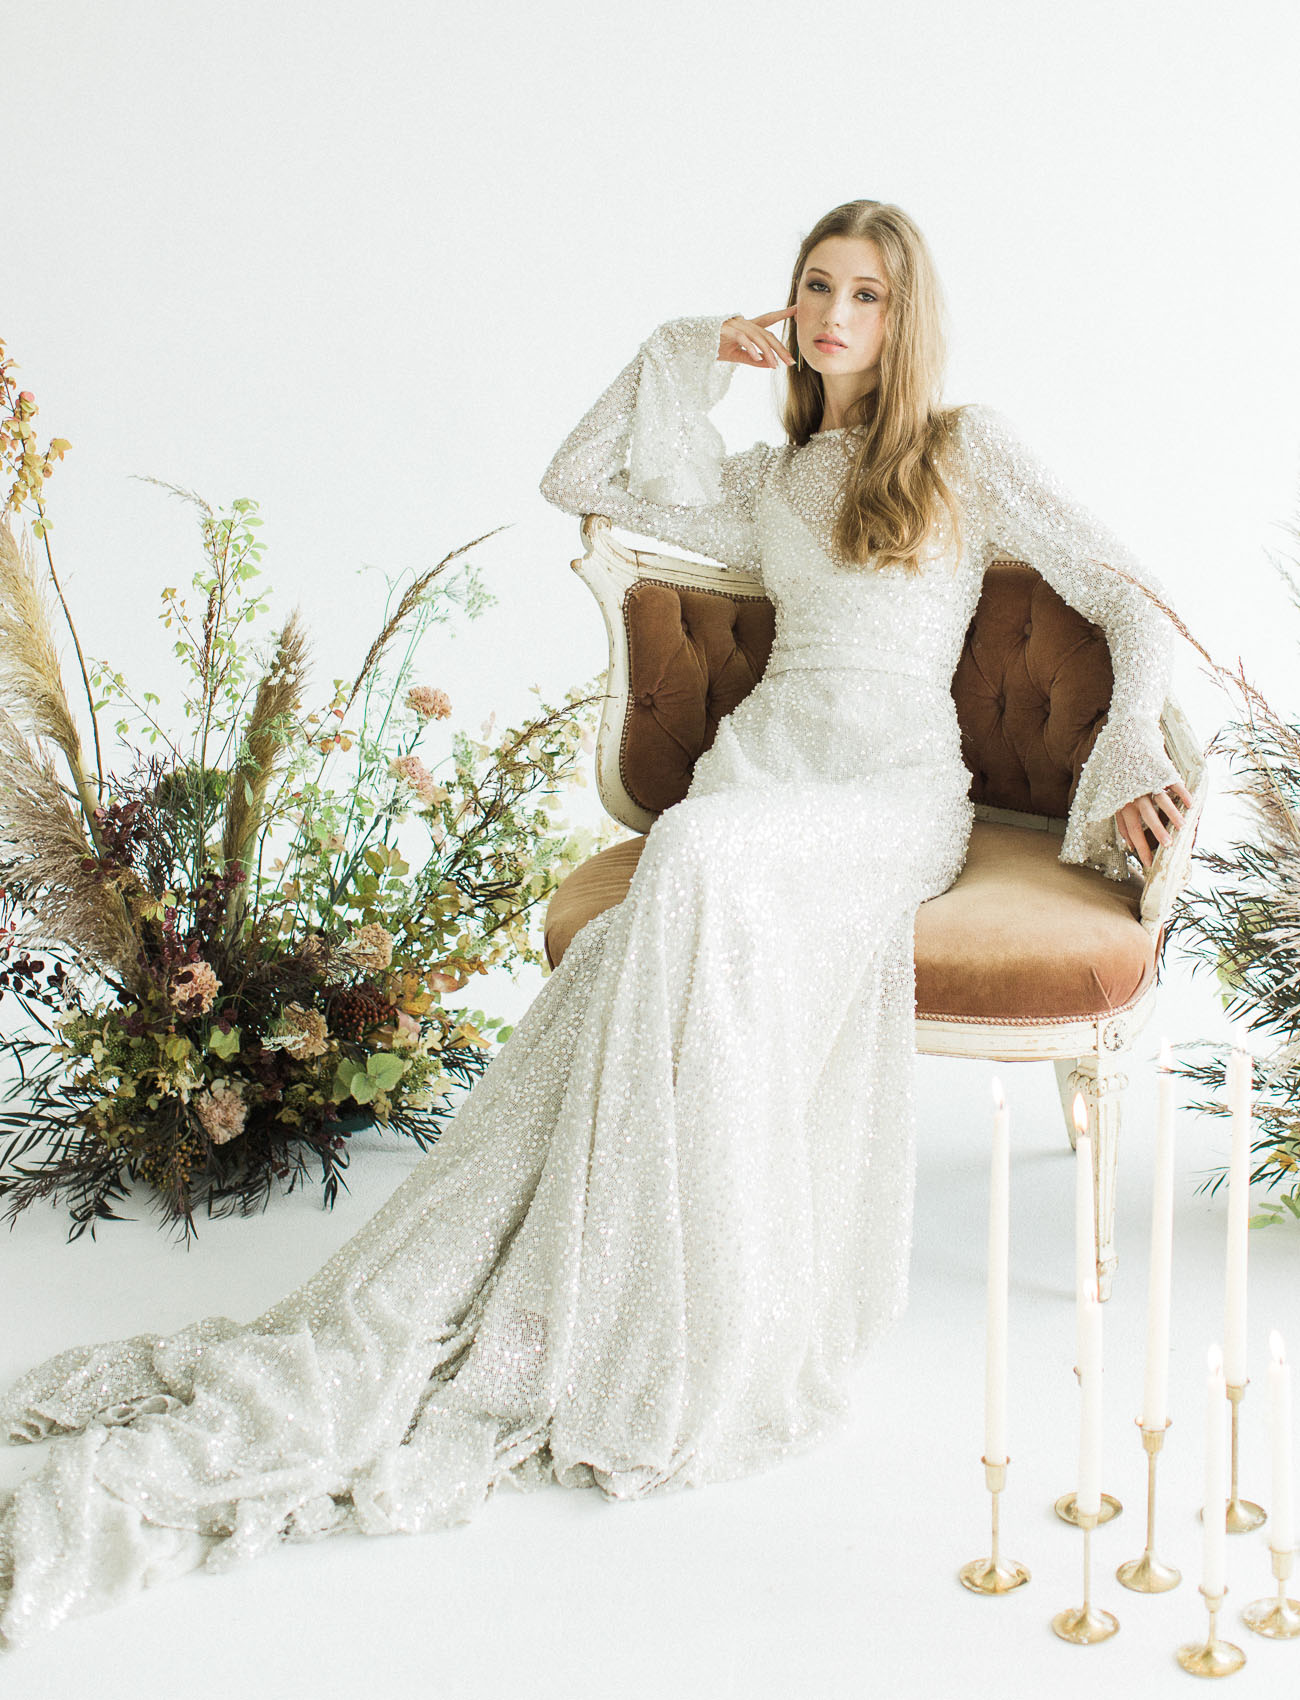 The second wedding dress was a beaded one with bell sleeves and a train and an illution neckline, so beautiful